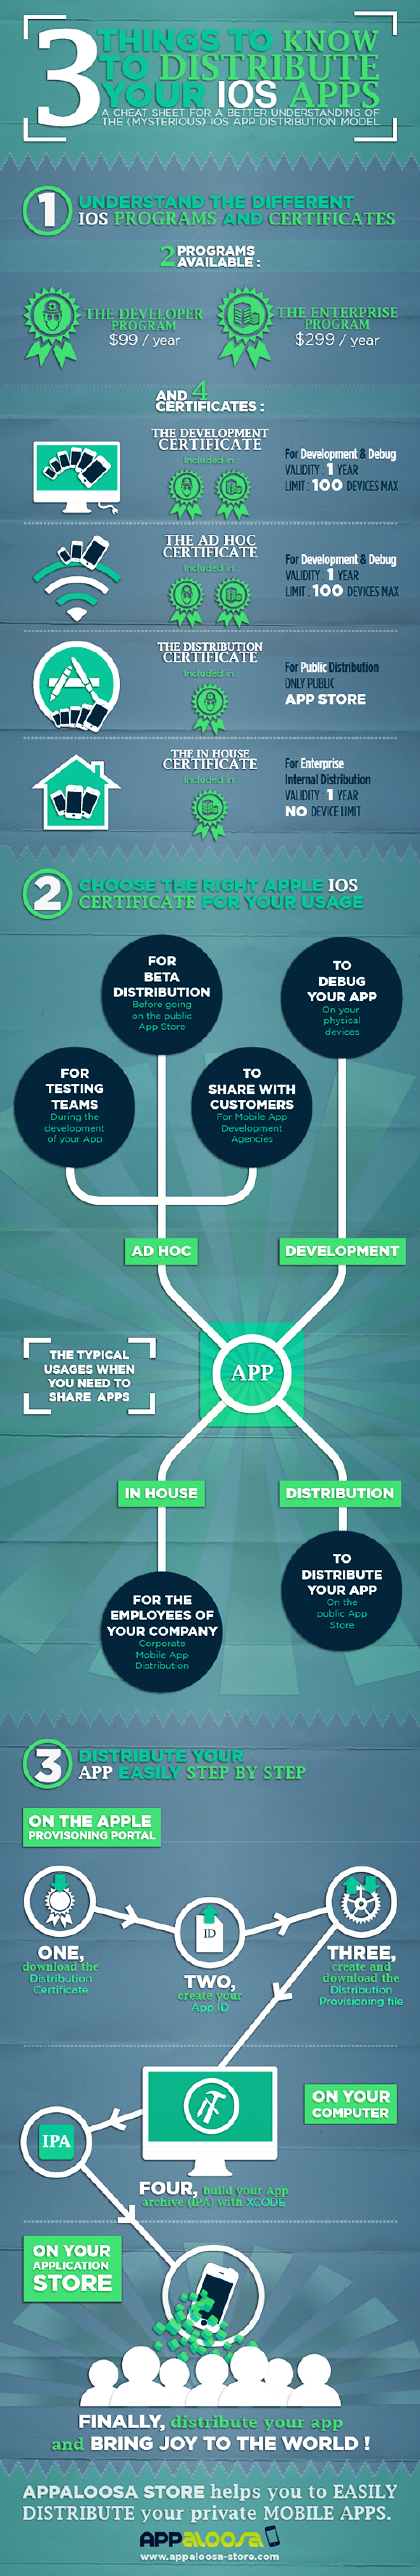 3 Things to know to distribute your IOS Apps Infographic